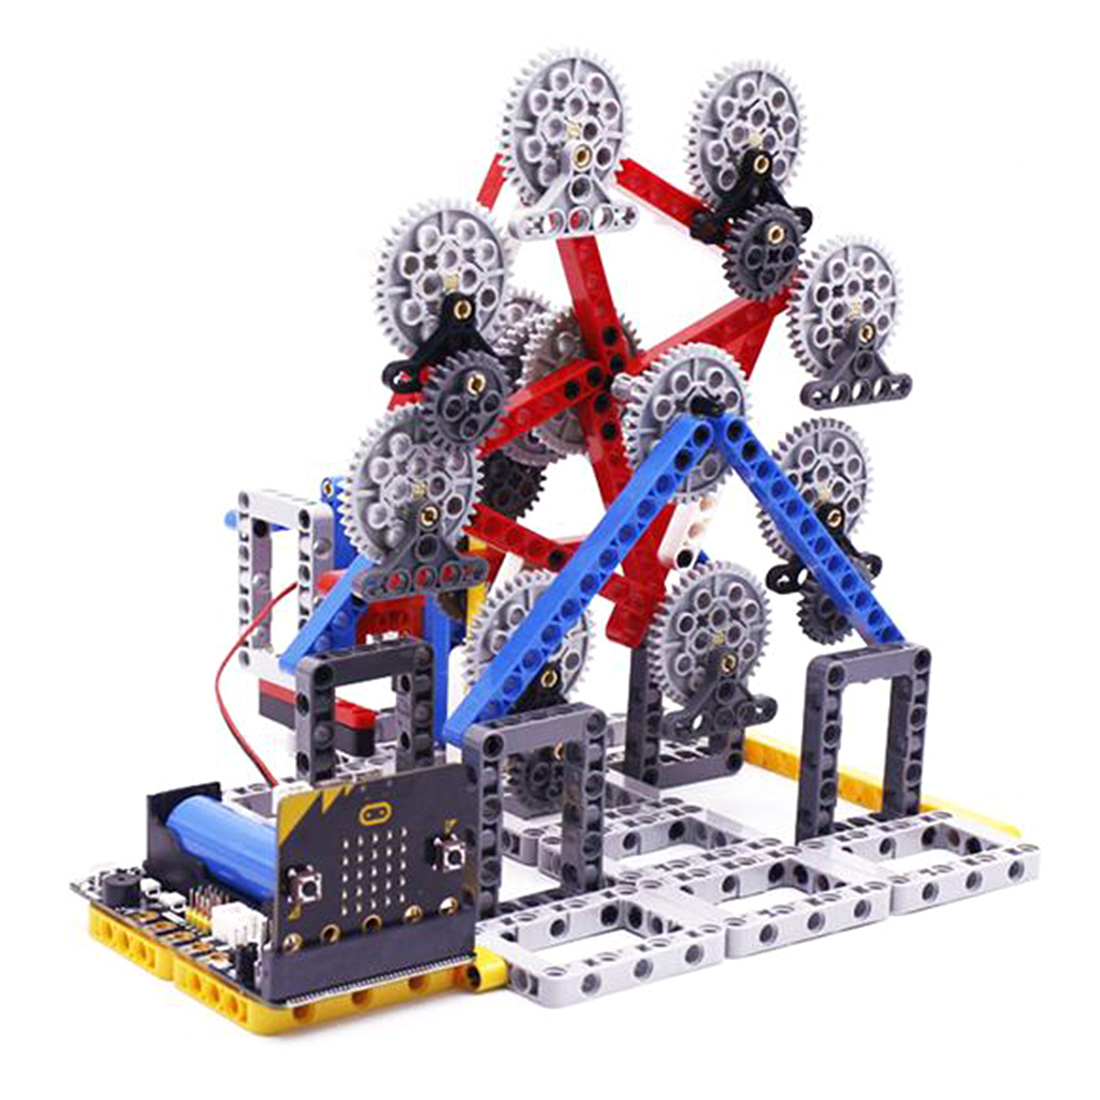 With Micro:Bit Programmable Toy Building Block DIY Smart Ferris Wheel Kit Programable Toys For Men Kids Gift - Random Color